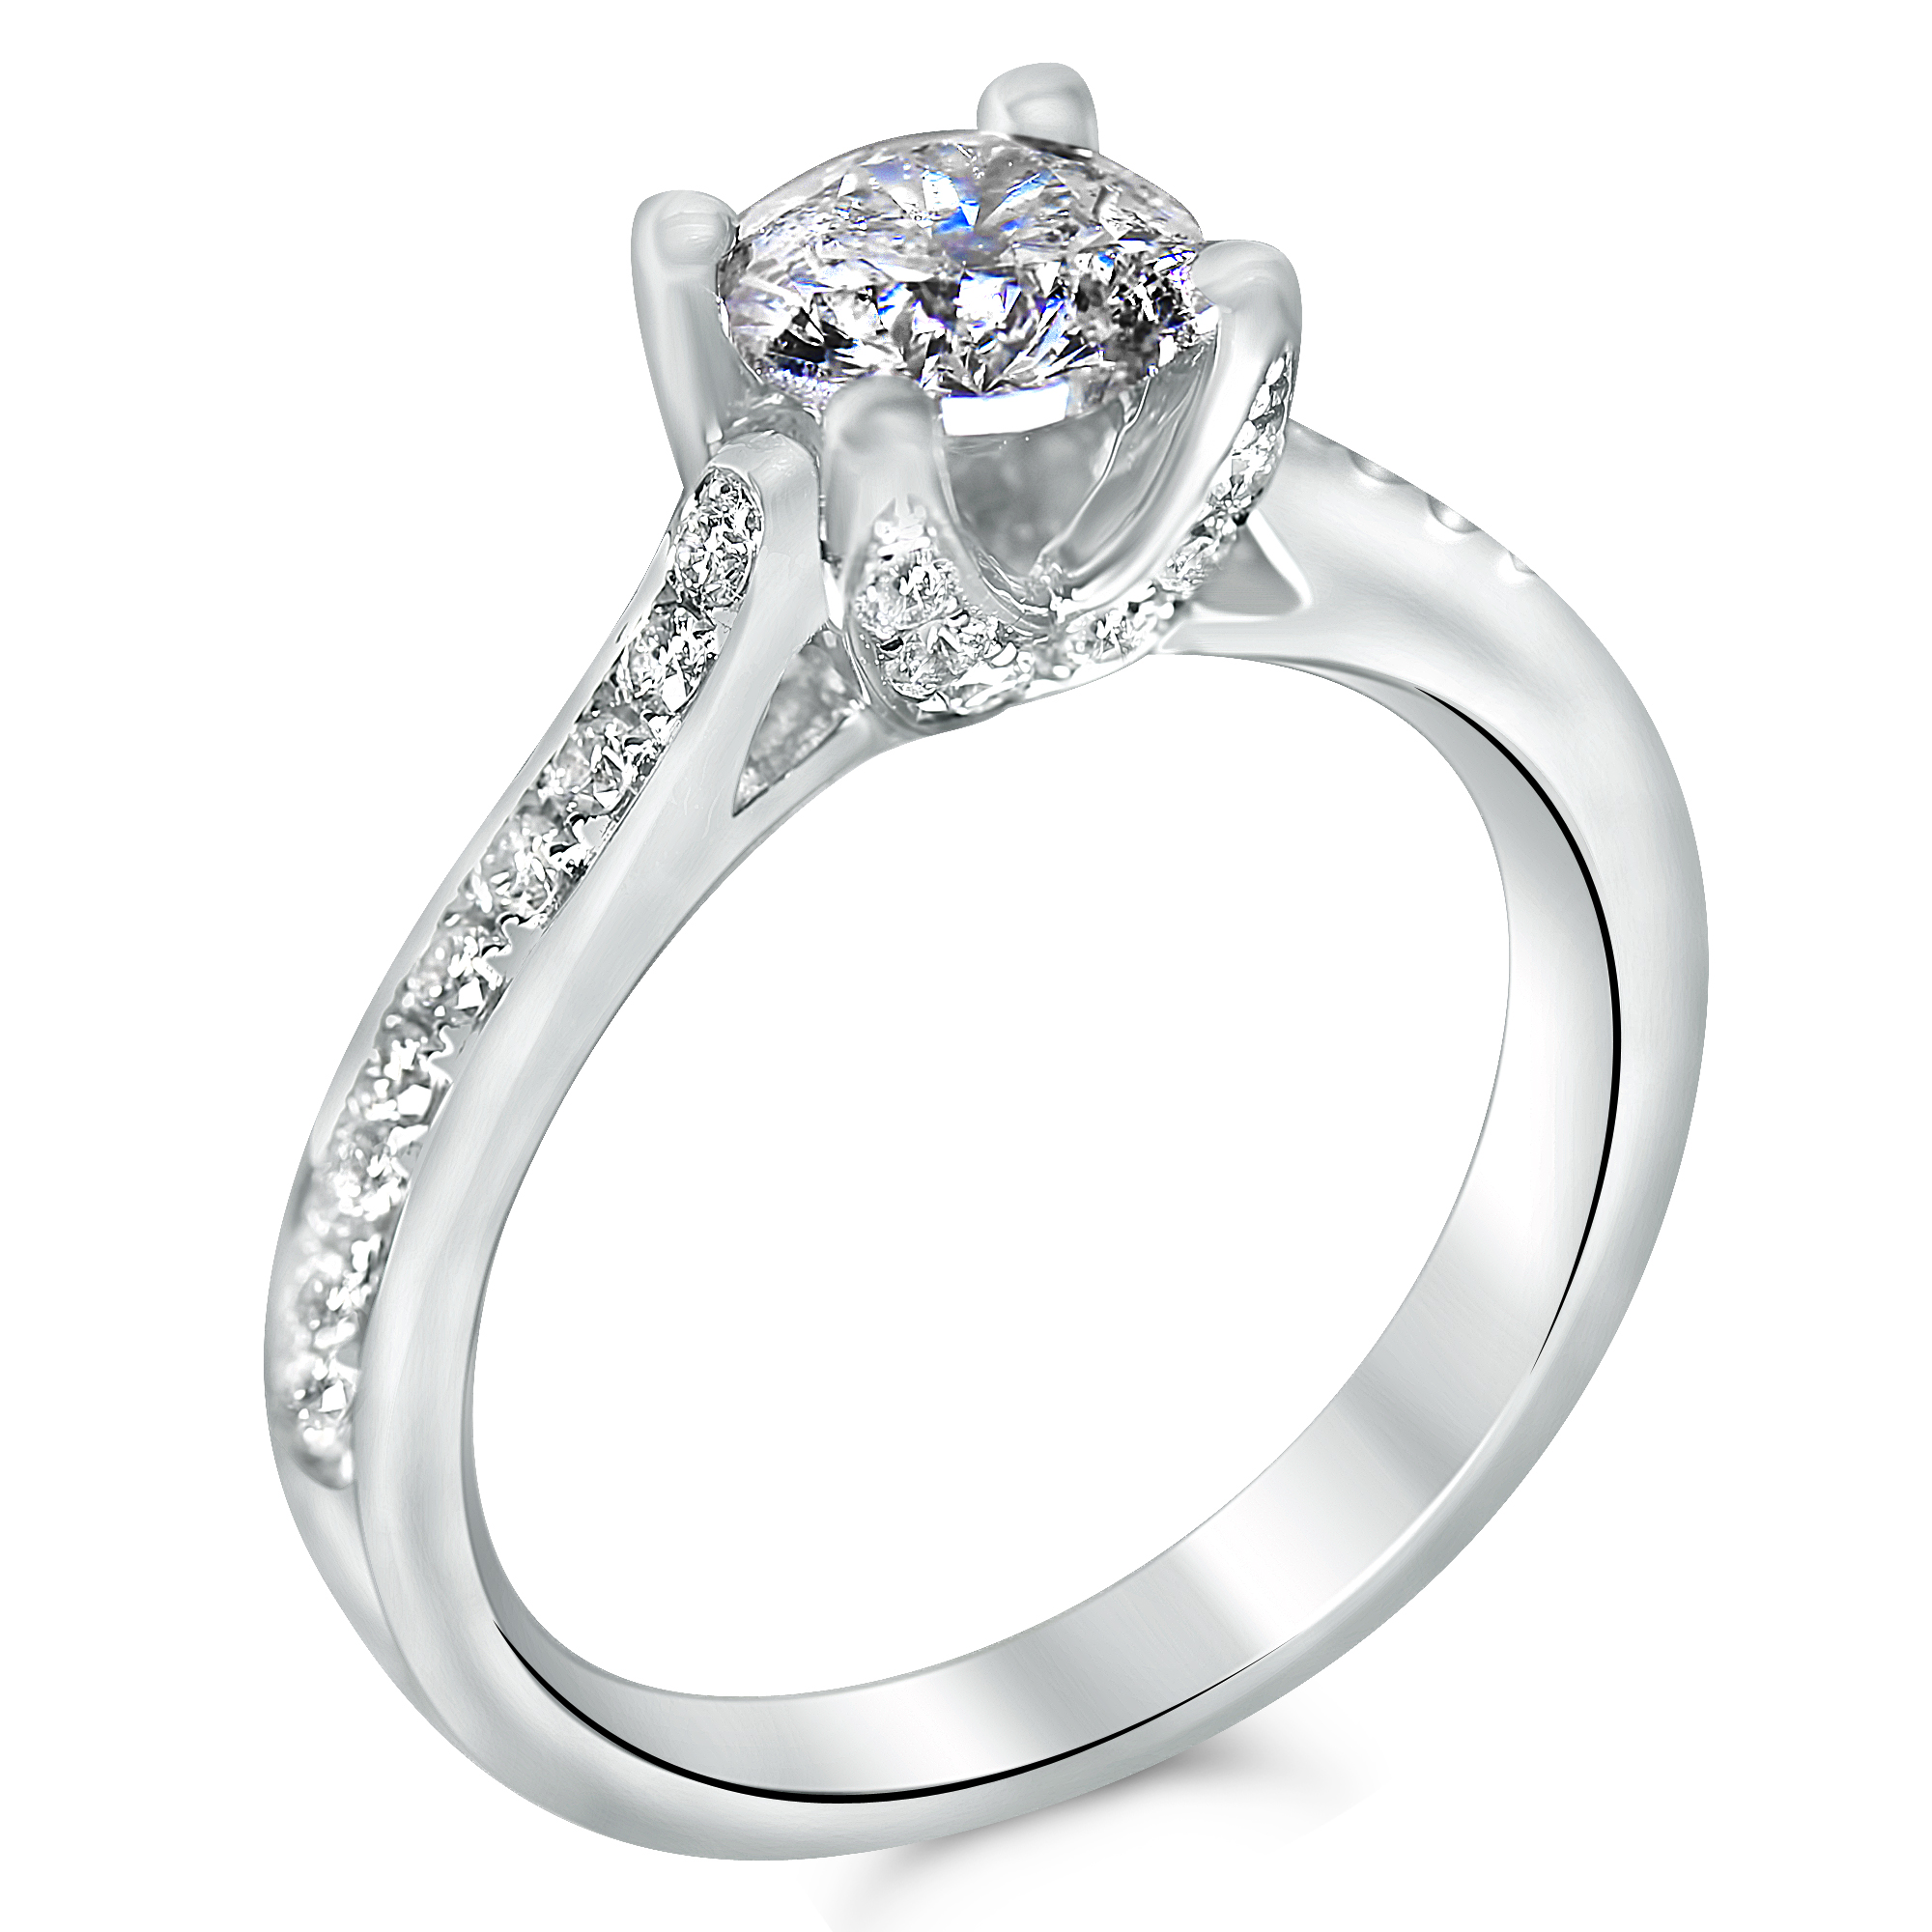 1 1/2cttw Pave Engagement Ring With Diamond Prongs